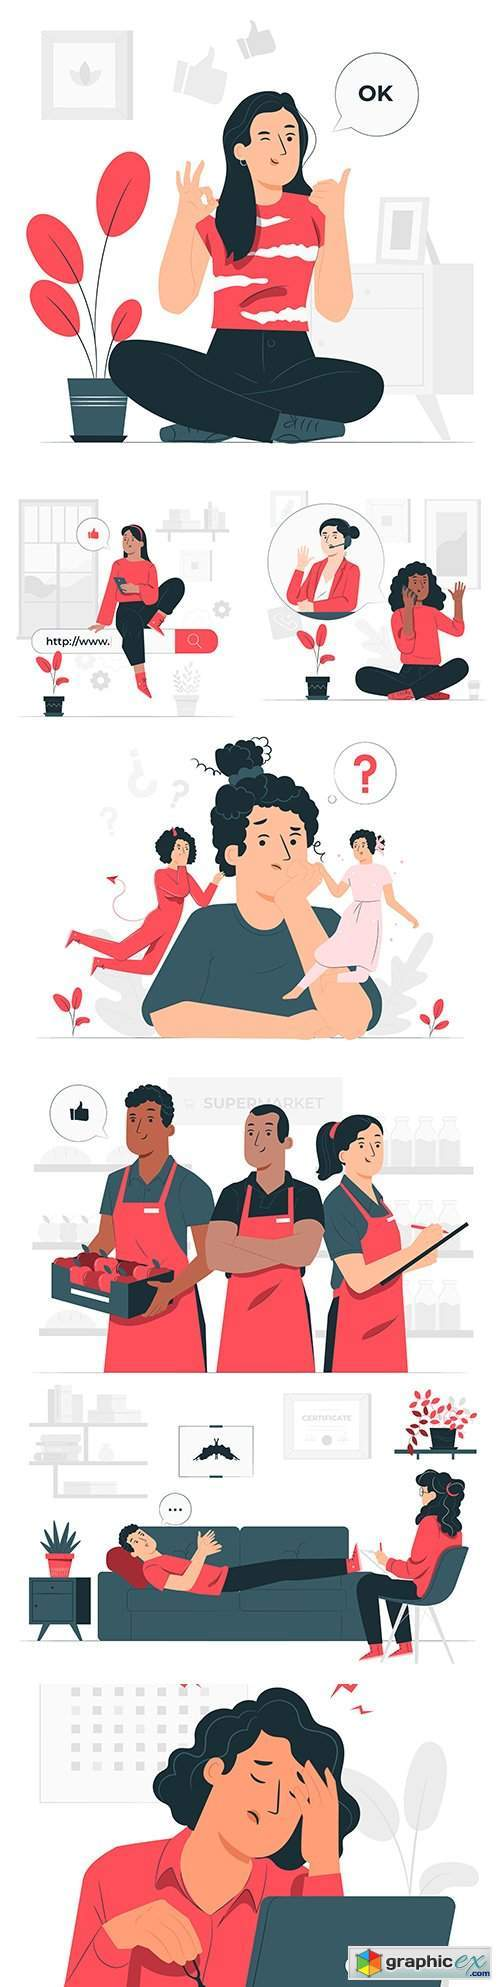 People different lifestyles and professions illustration concept